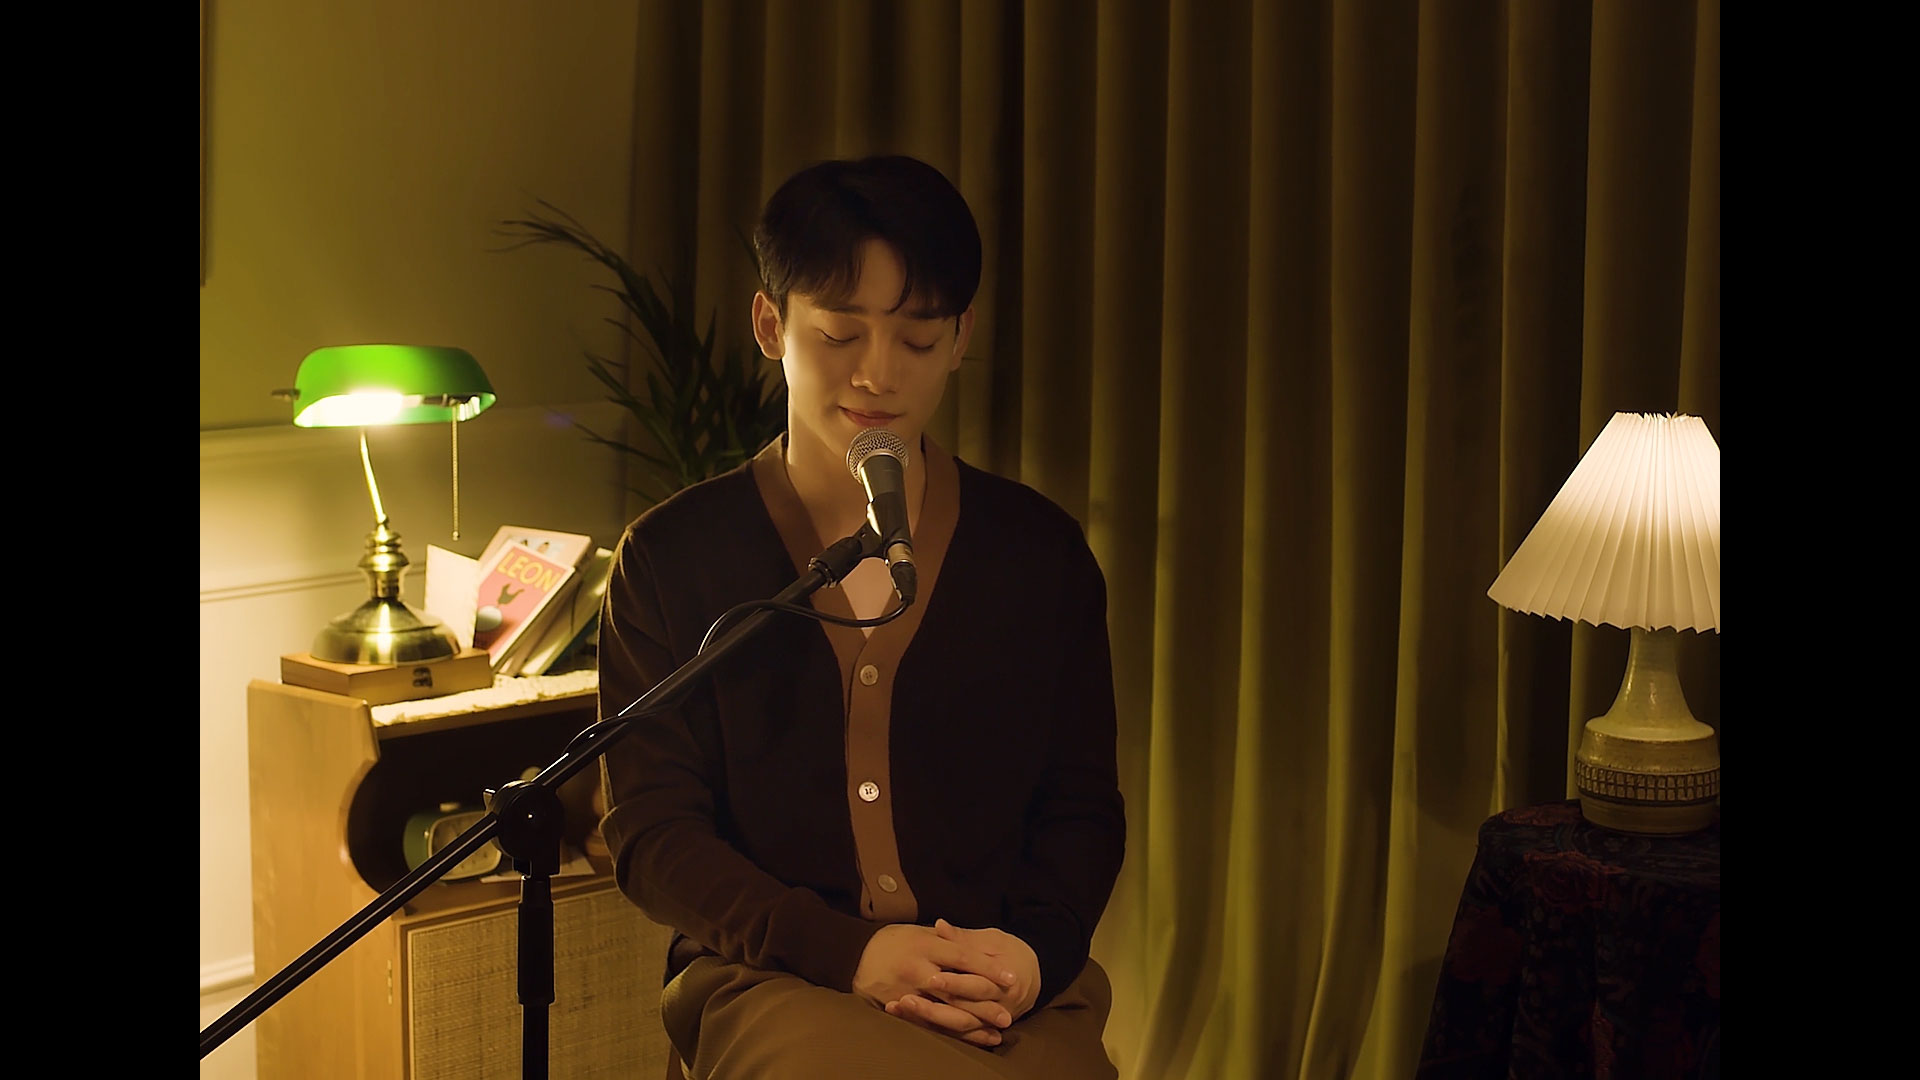 CHEN 첸 '사랑하는 그대에게 (Dear my dear)' Highlight Medley #my_dear